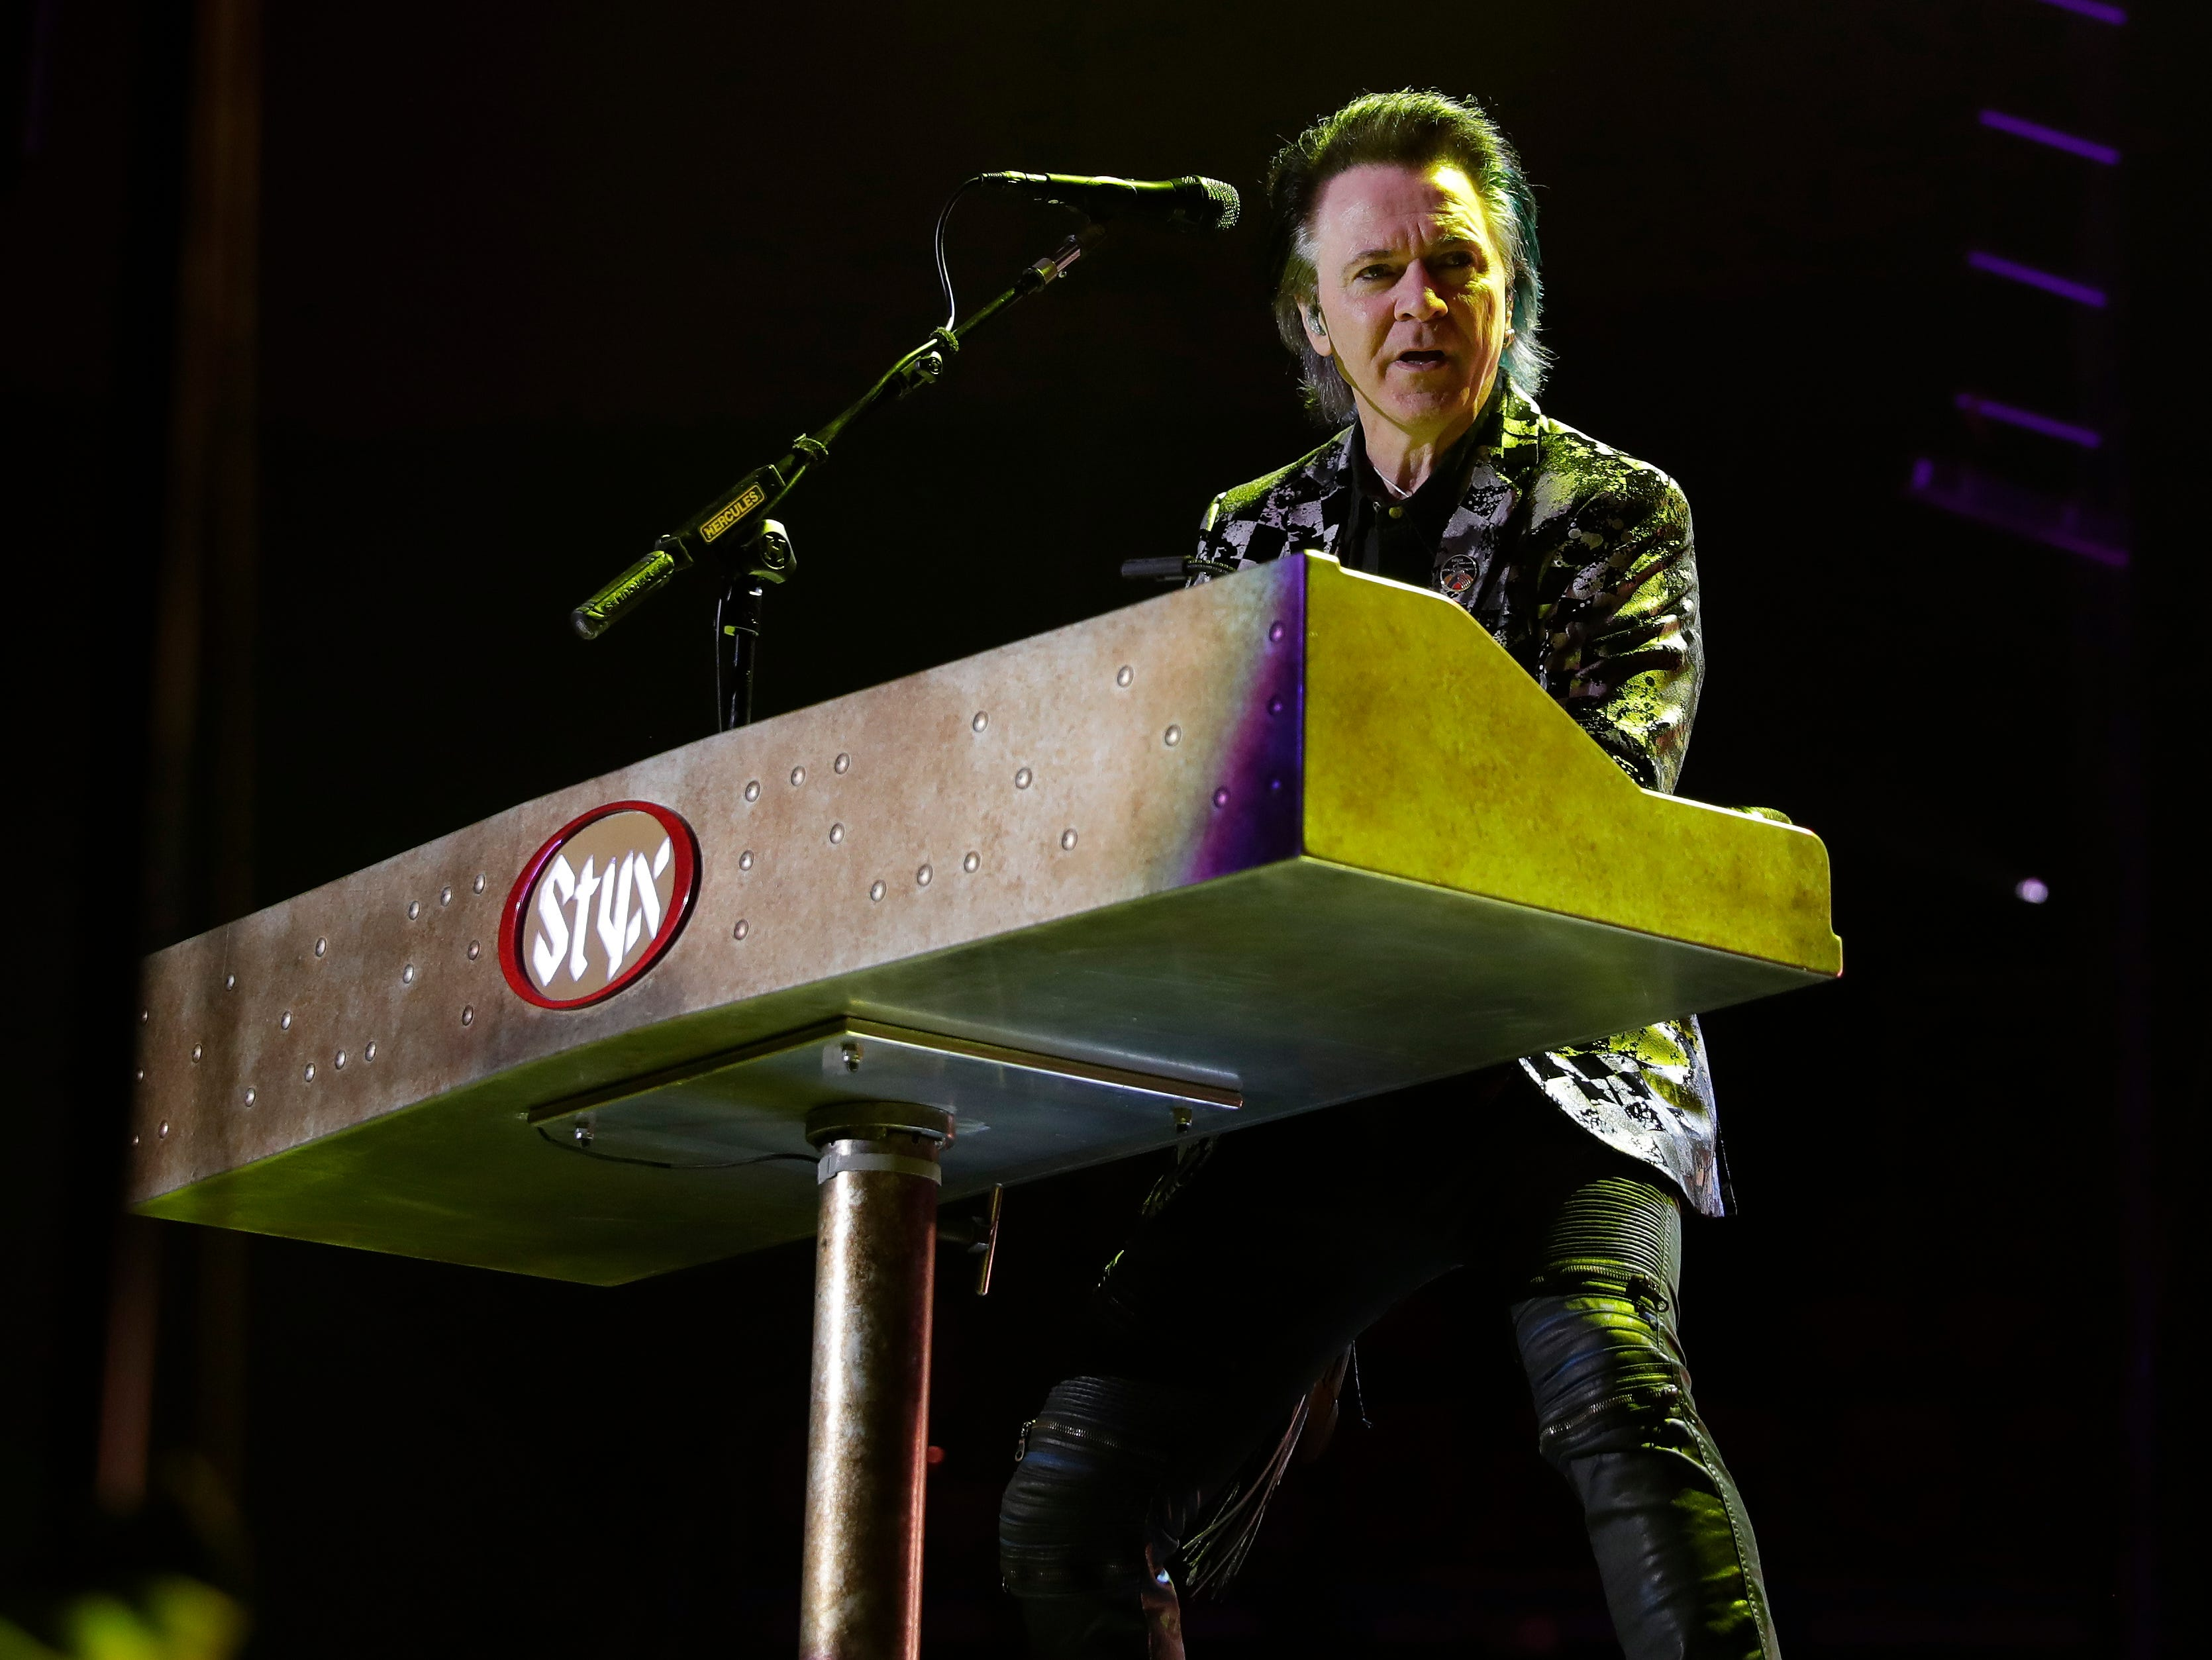 Lawrence Gowan of Styx performs Dec. 29, 2018 at the Resch Center in Ashwaubenon, Wis.